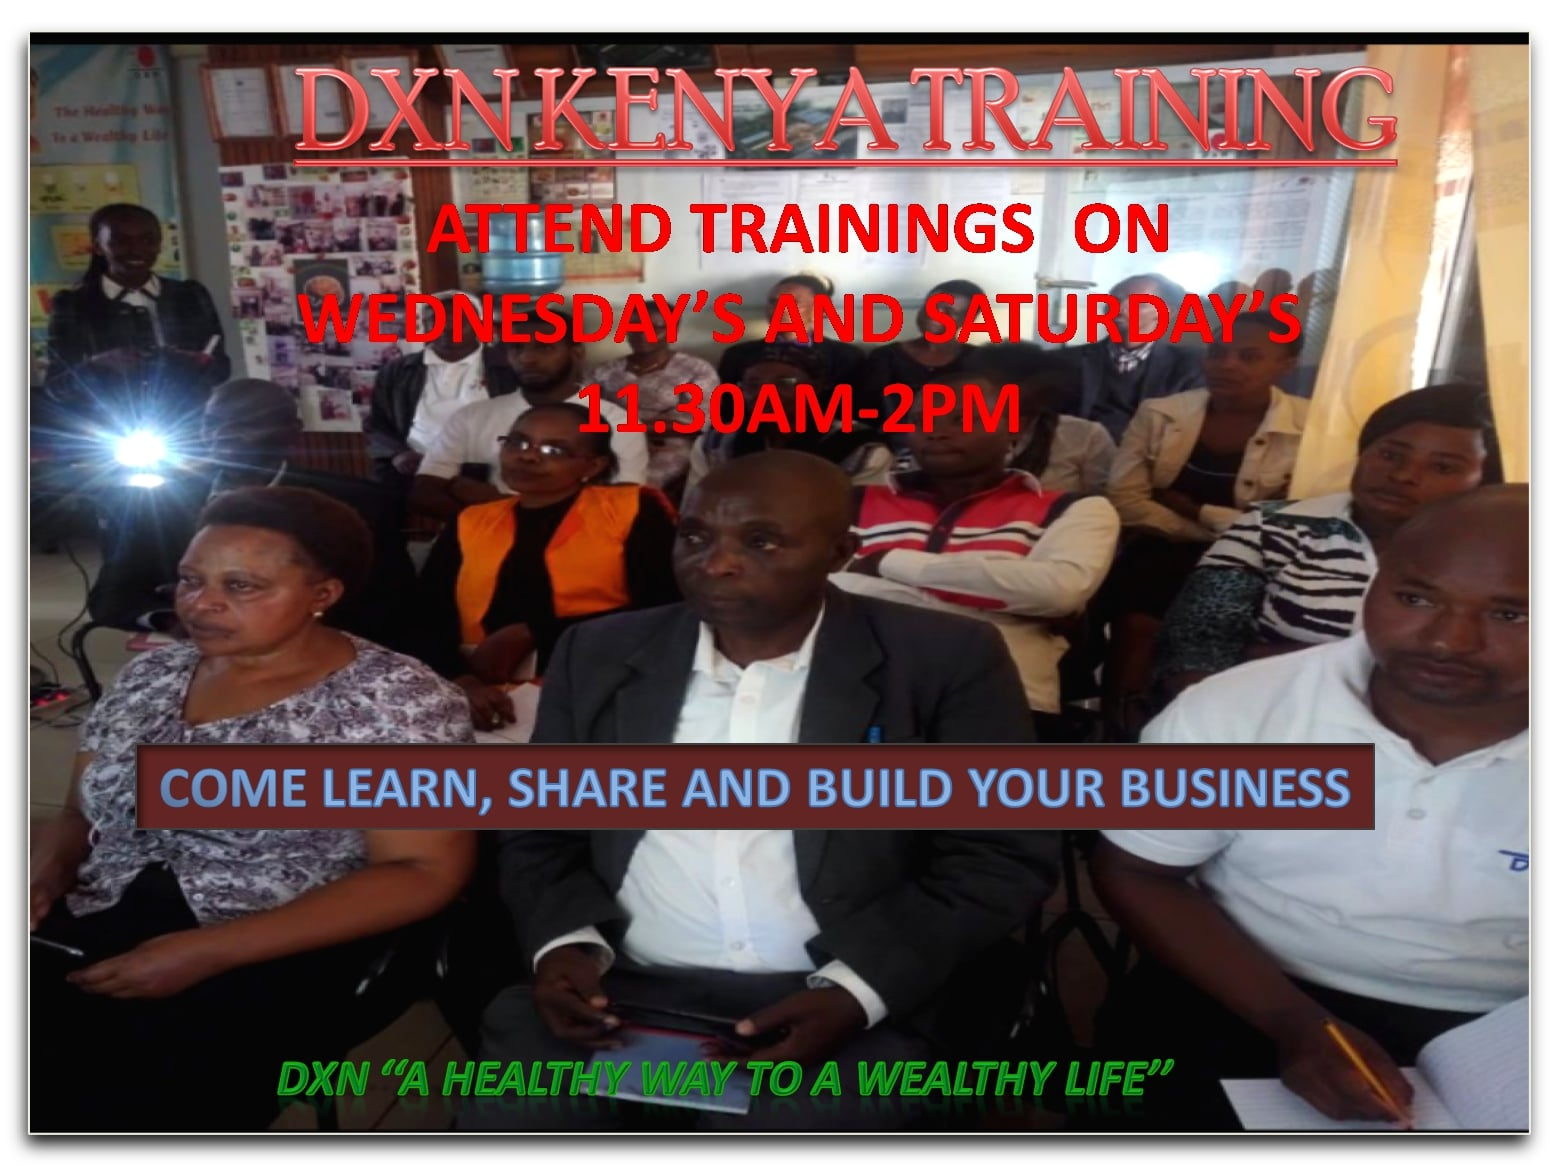 <h4>DXN KENYA TRAINING'S </h4><p><p>Dear members,we have trainings every wednesday and Thursday from 11.30am to 2pm.</p>